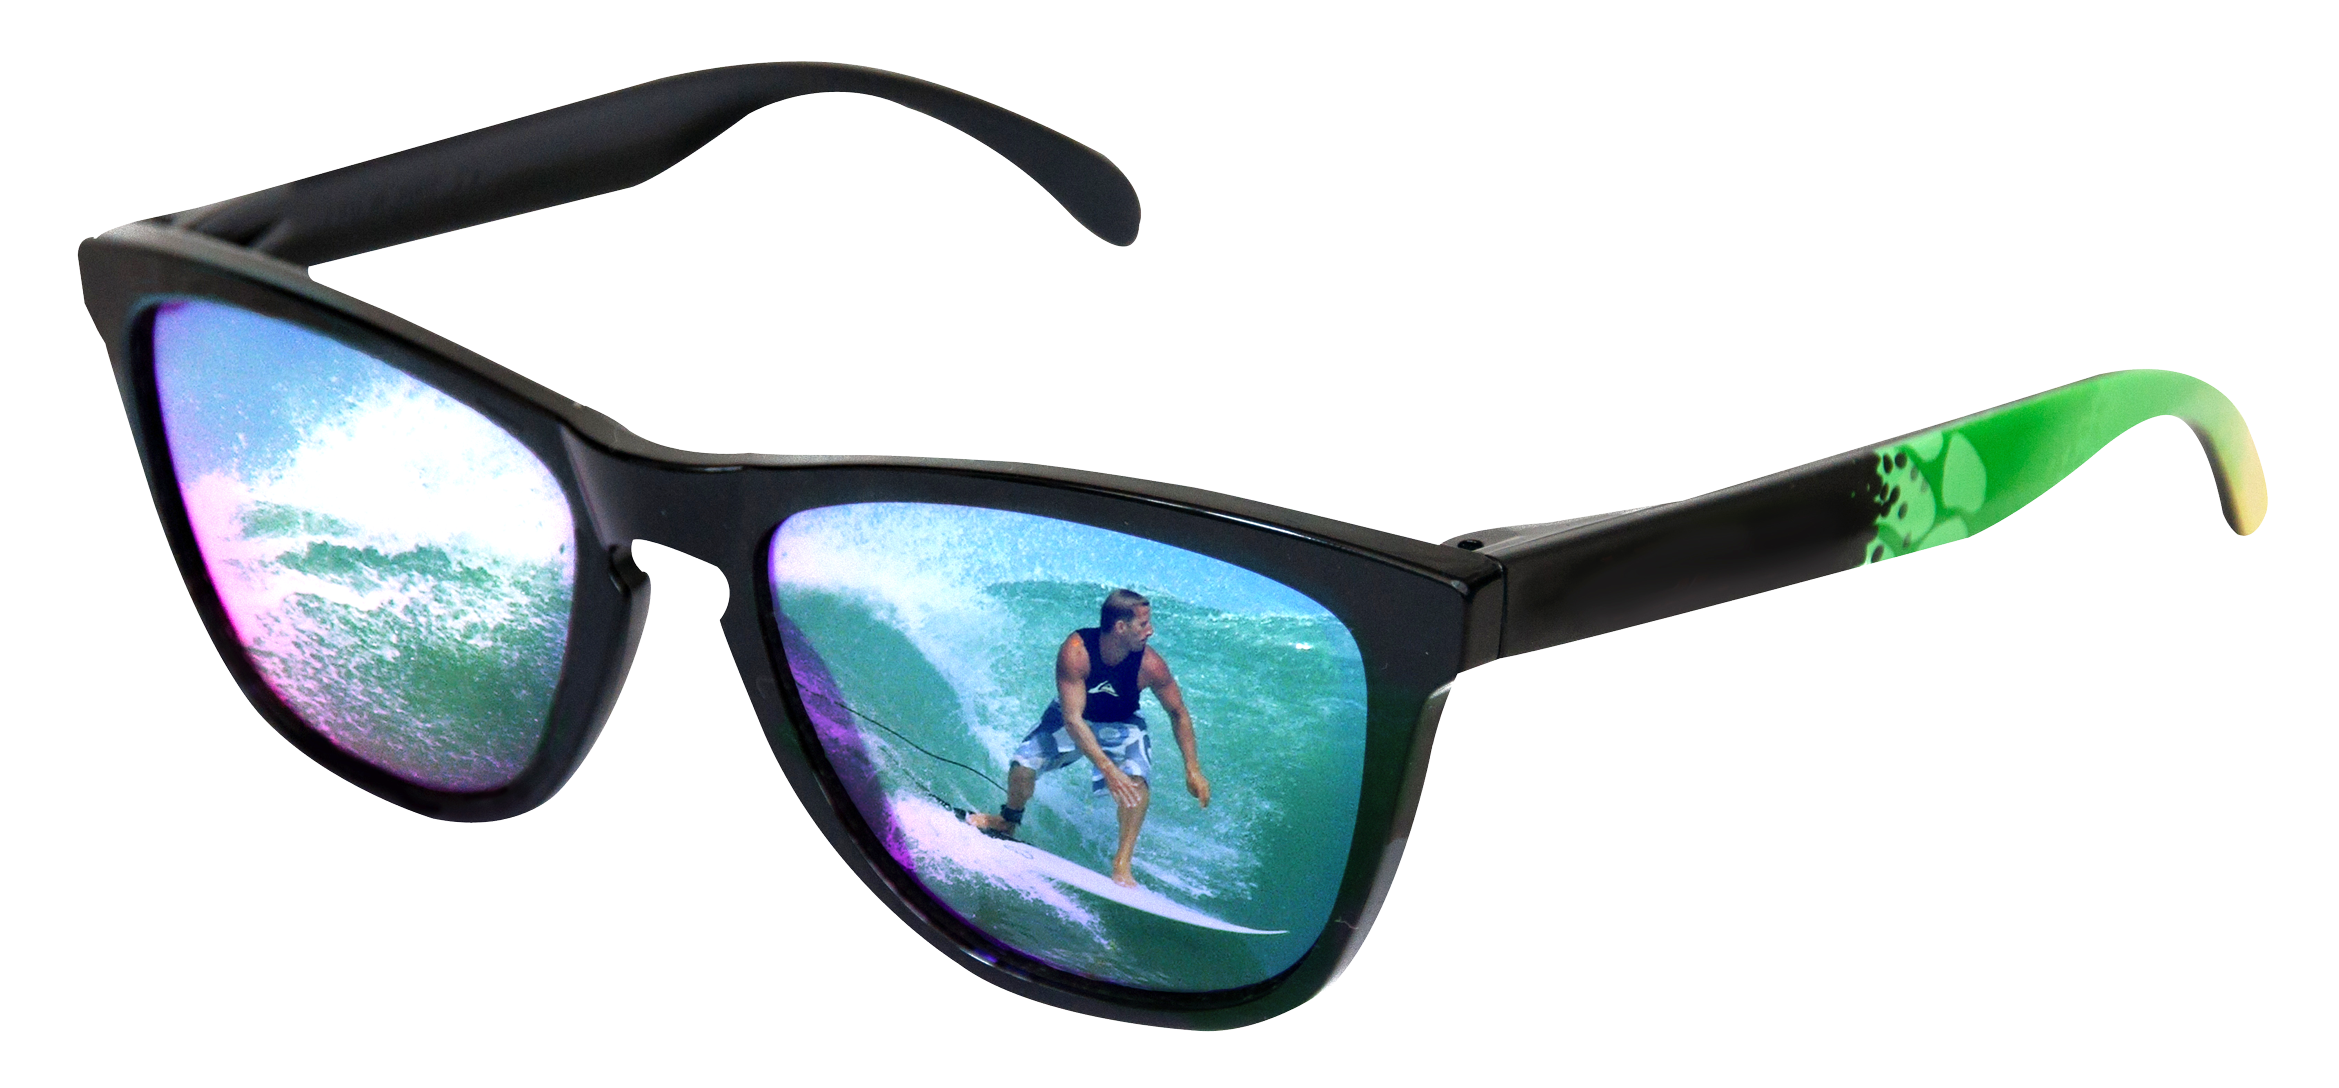 Sunglasses With Surfer Reflection PNG Image - Glasses HD PNG